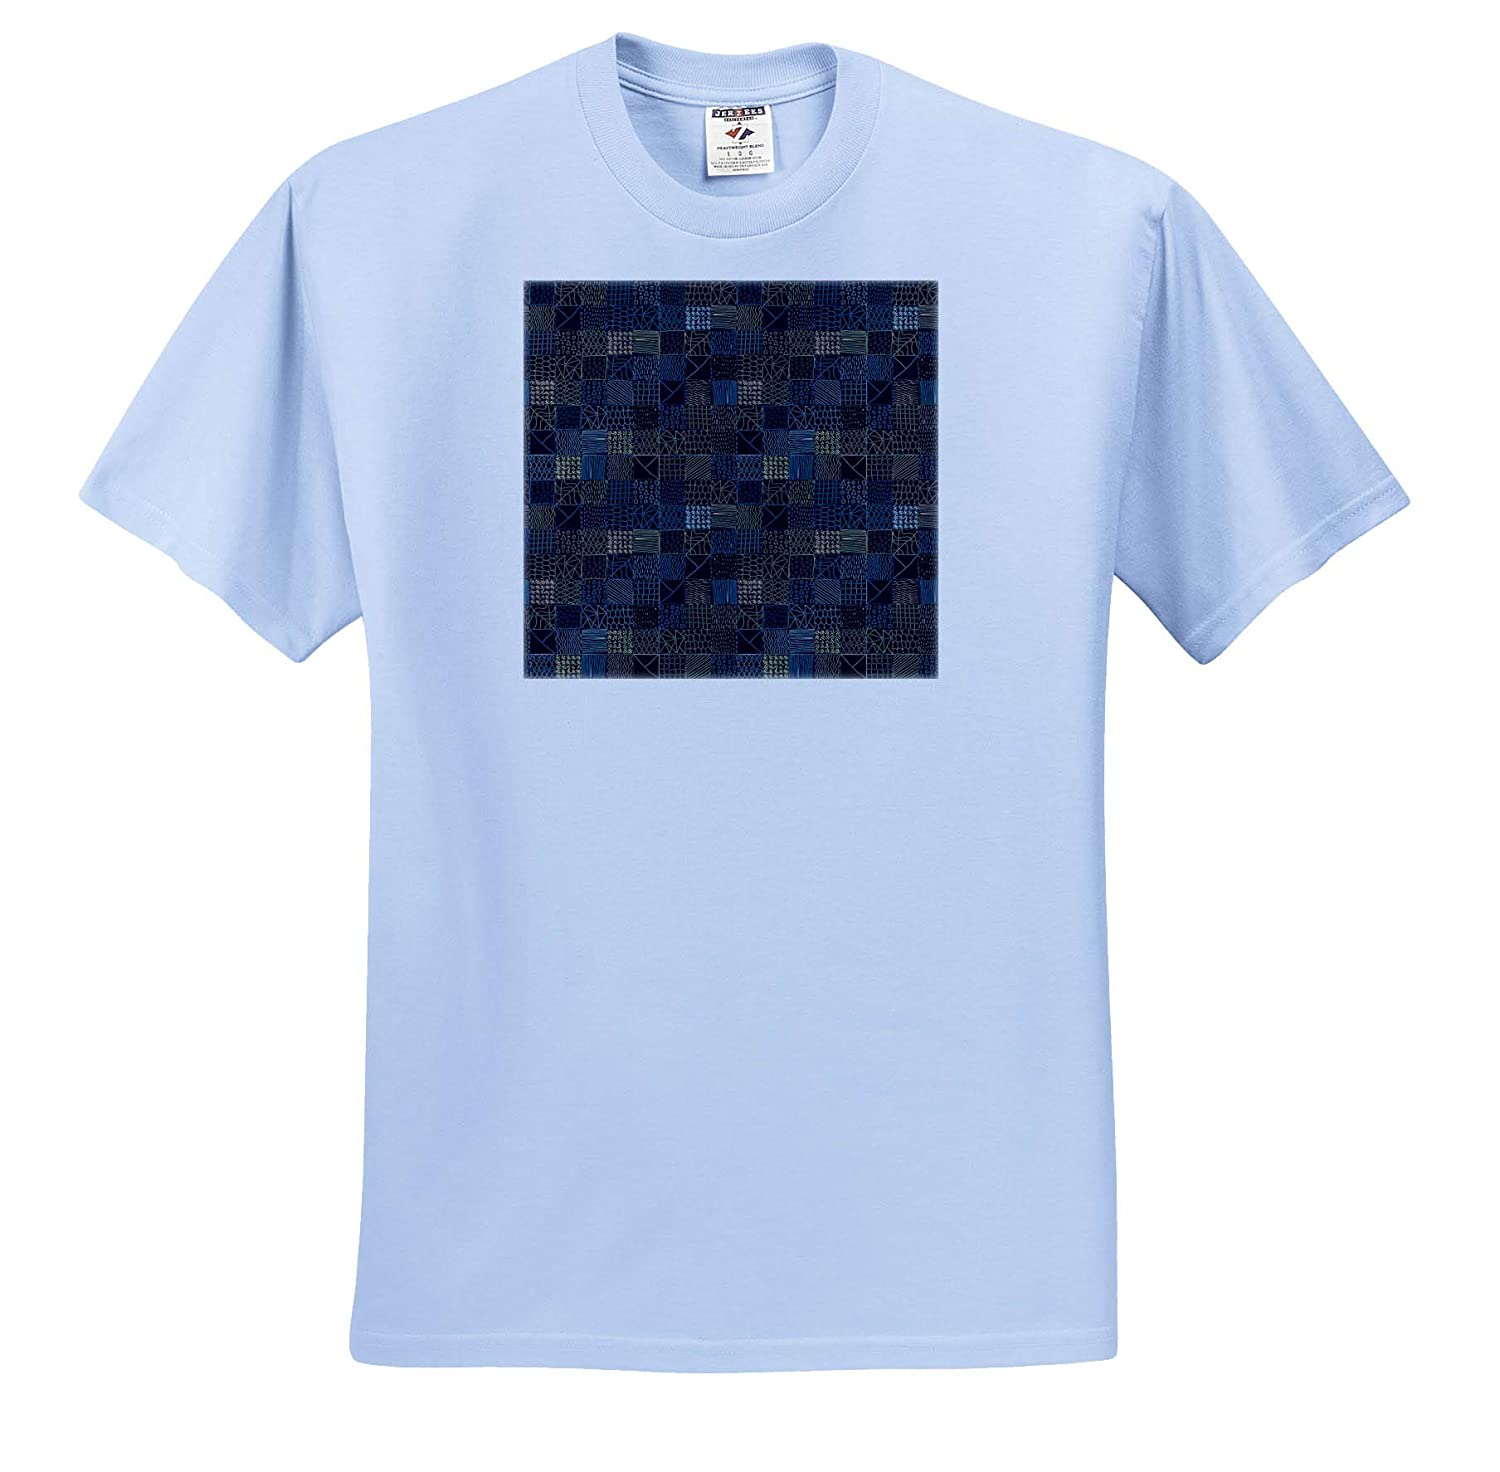 T-Shirts Gorgeous Dark Geometric Pattern of Lines Pattern Geometrical Shapes in Squares 3dRose Alexis Design